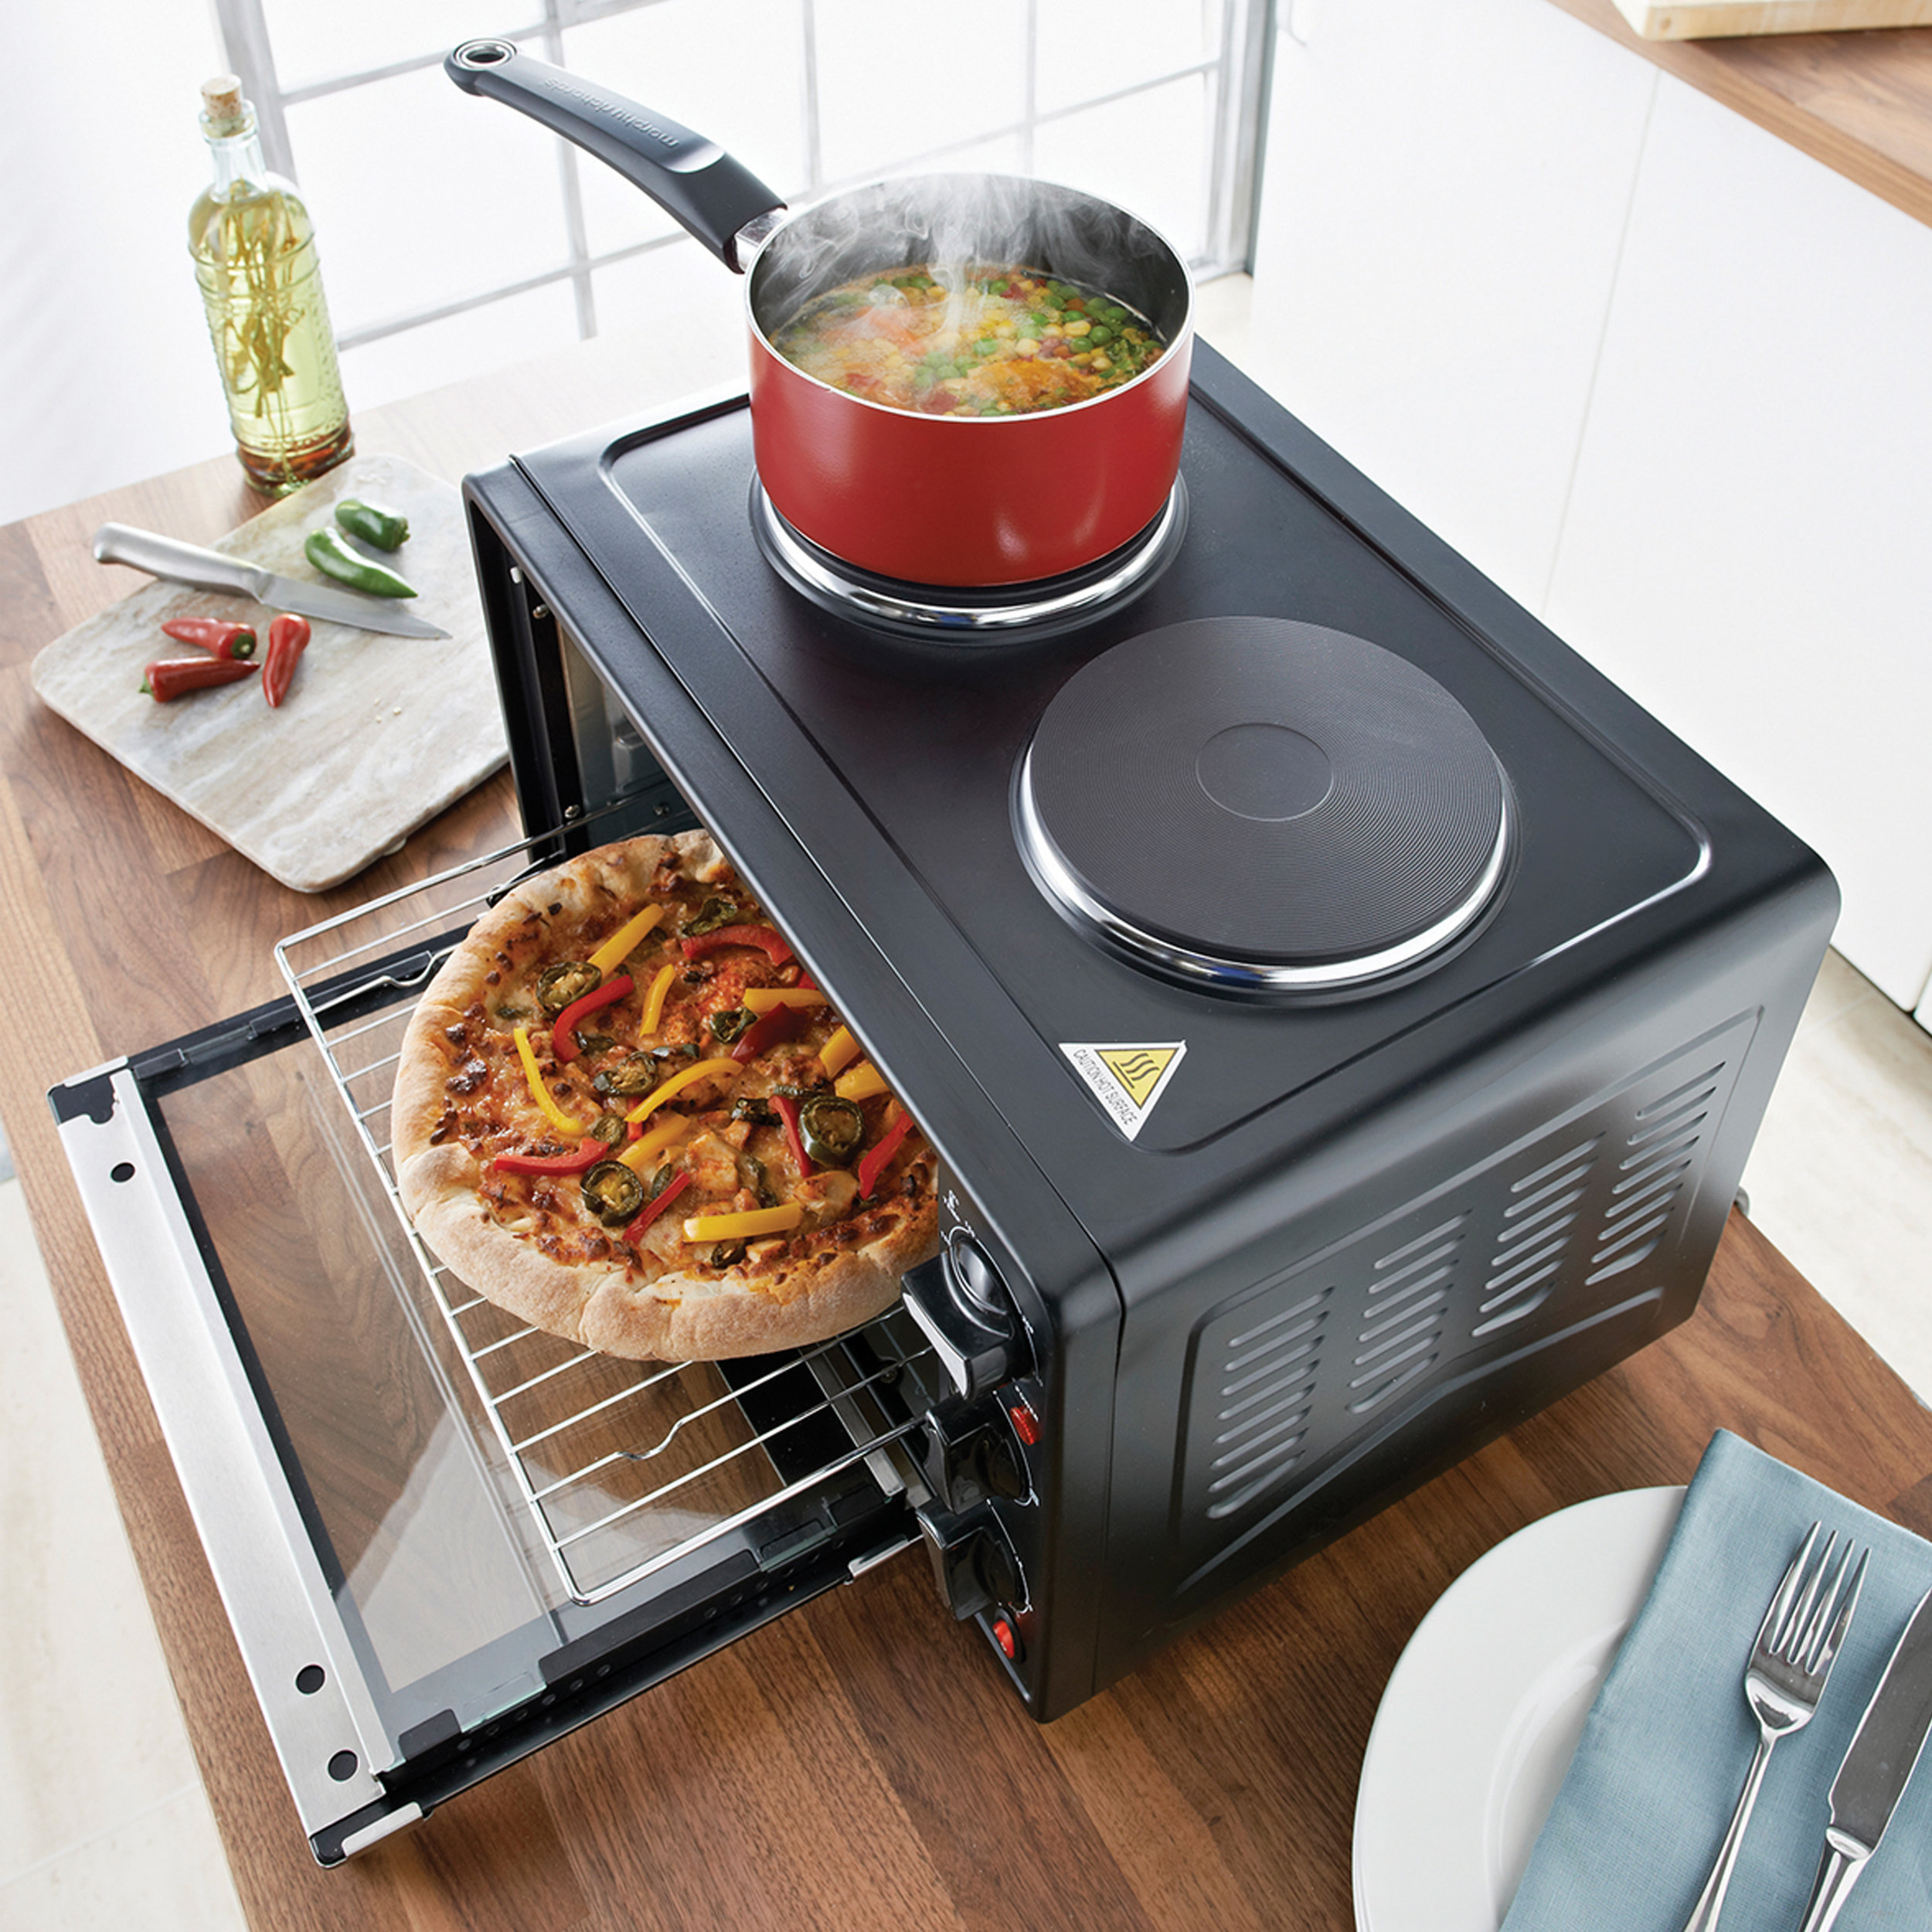 Twin Hob Convection Oven in the kitchen using 1 hob and the oven